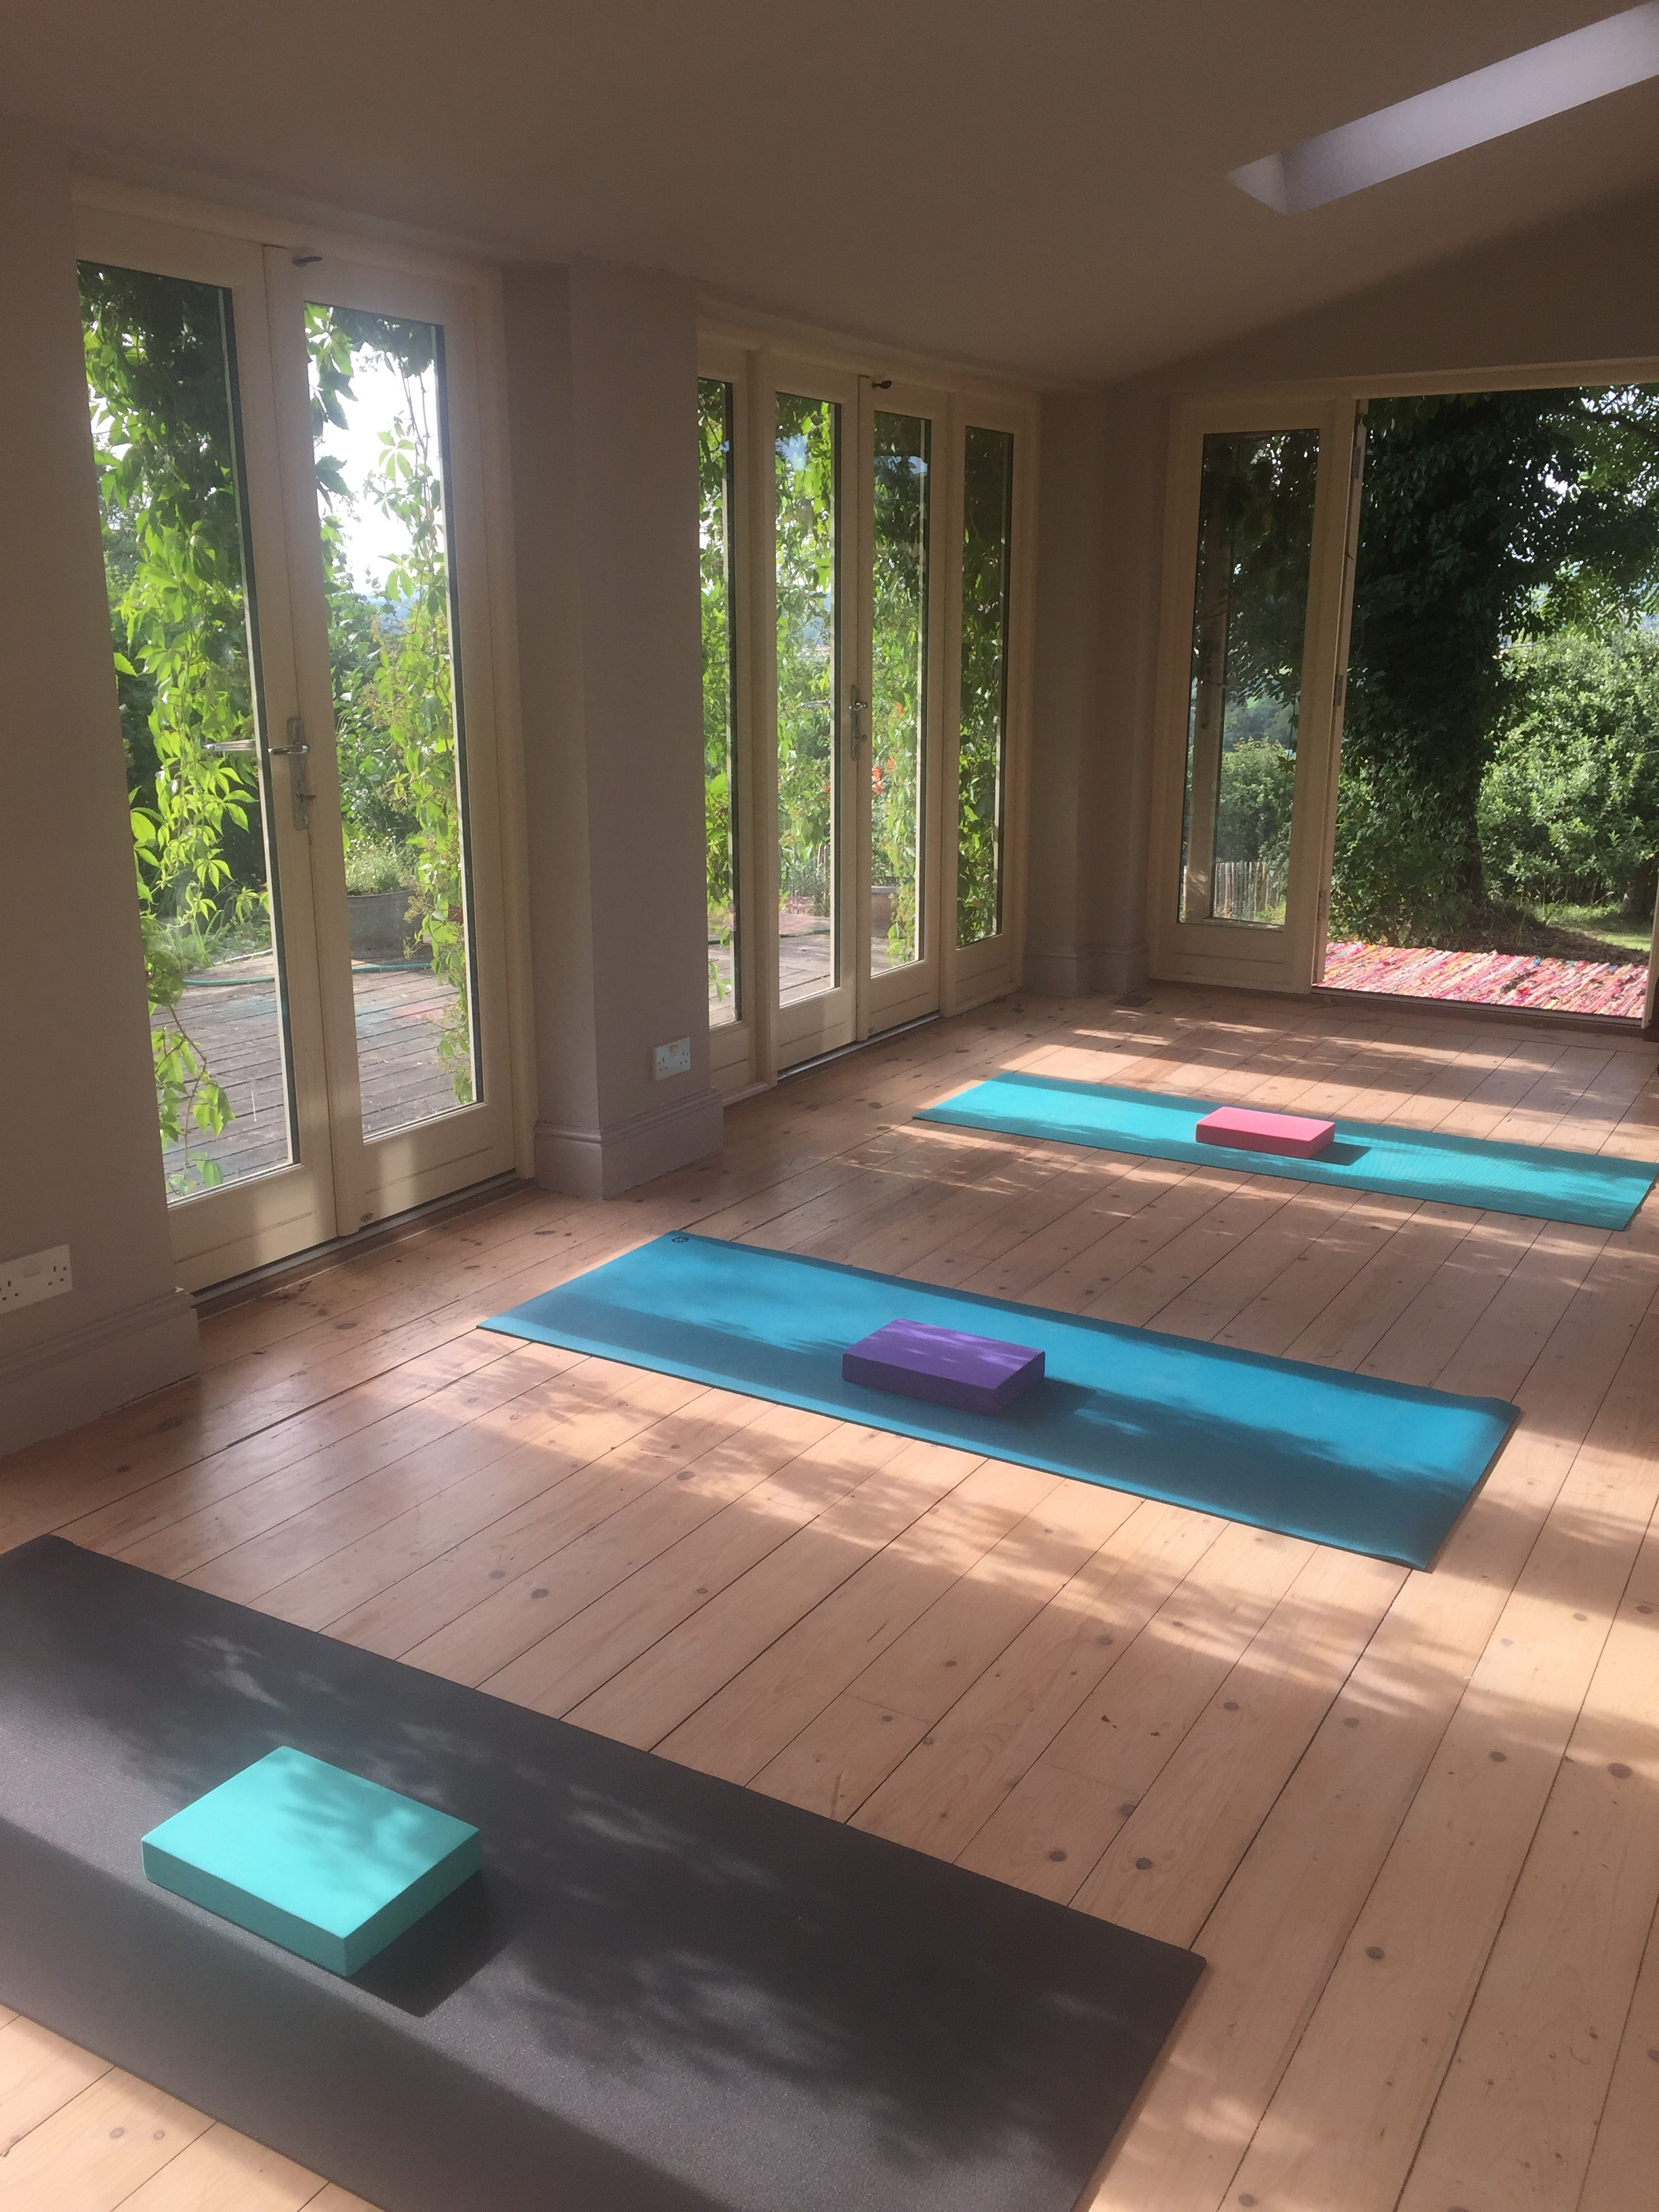 Nurture Yoga - COME TO THE HILLSIDE …Practice yoga in the peace and beauty of a private studio, in small groups or 1-1, led by an experienced practitioner.GROUP CLASSES £10 90 minute classes of 4 or 5 people provide an opportunity to learn sequences of movement appropriate to your individual needs.PRIVATE CLASSES £401 hour sessions if you are new to yoga and wish to learn more personally, or to extend and deepen your practice, or if you have an injury and need special attention.